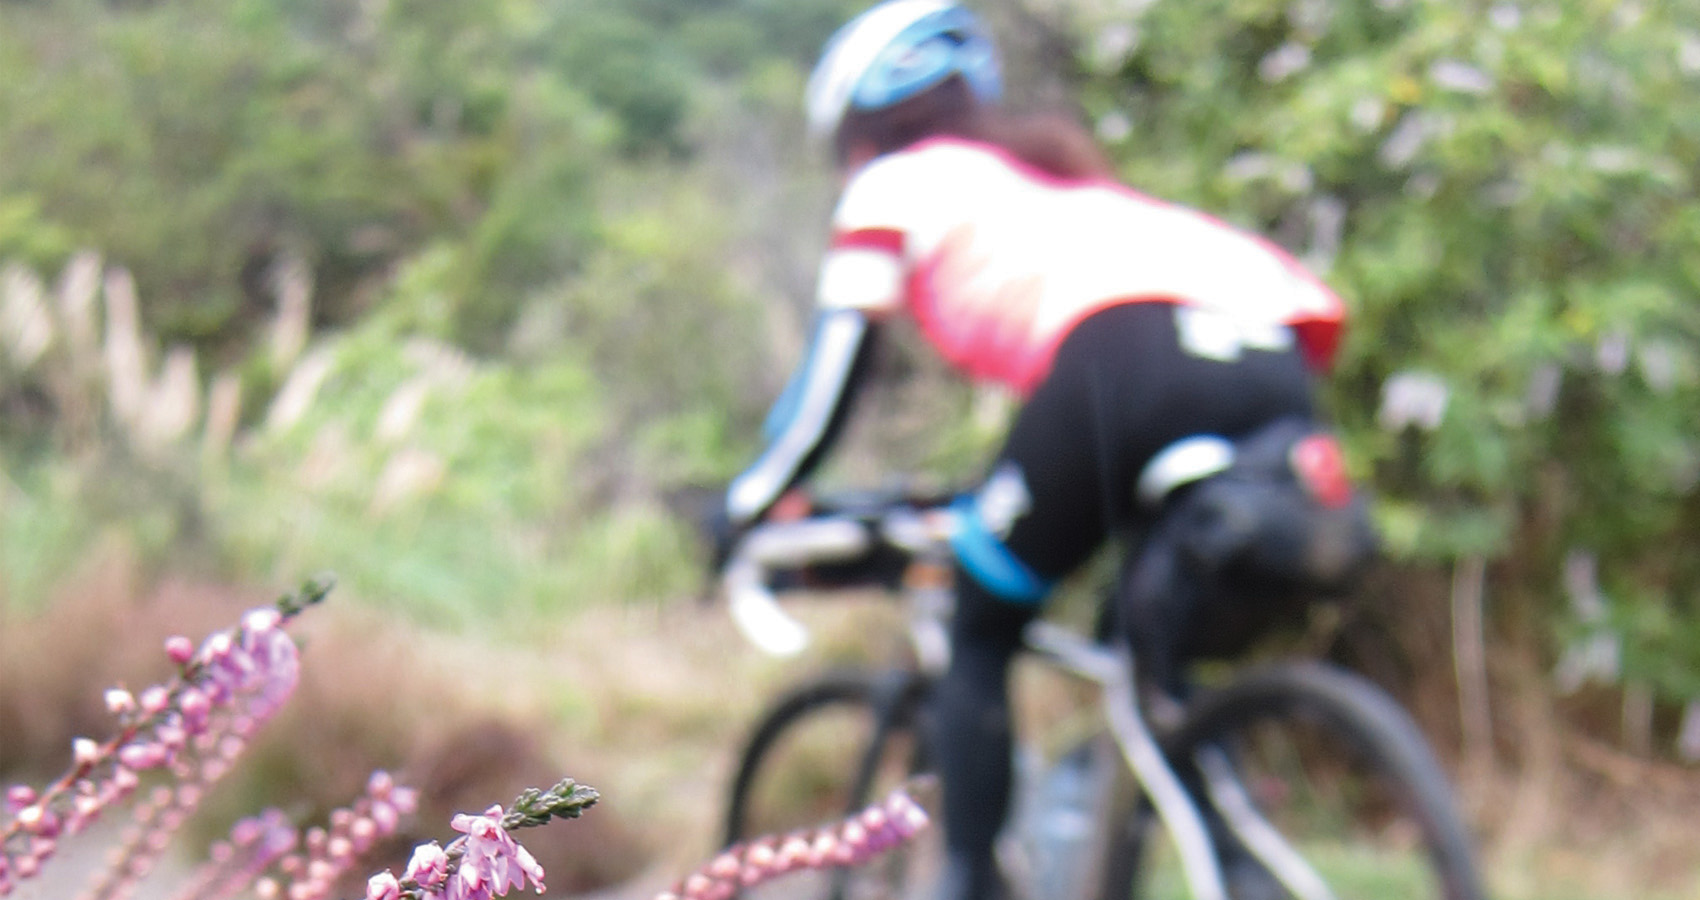 a rider too swift to catch with autofocus flies by some beautiful pink flowers in New Zealand